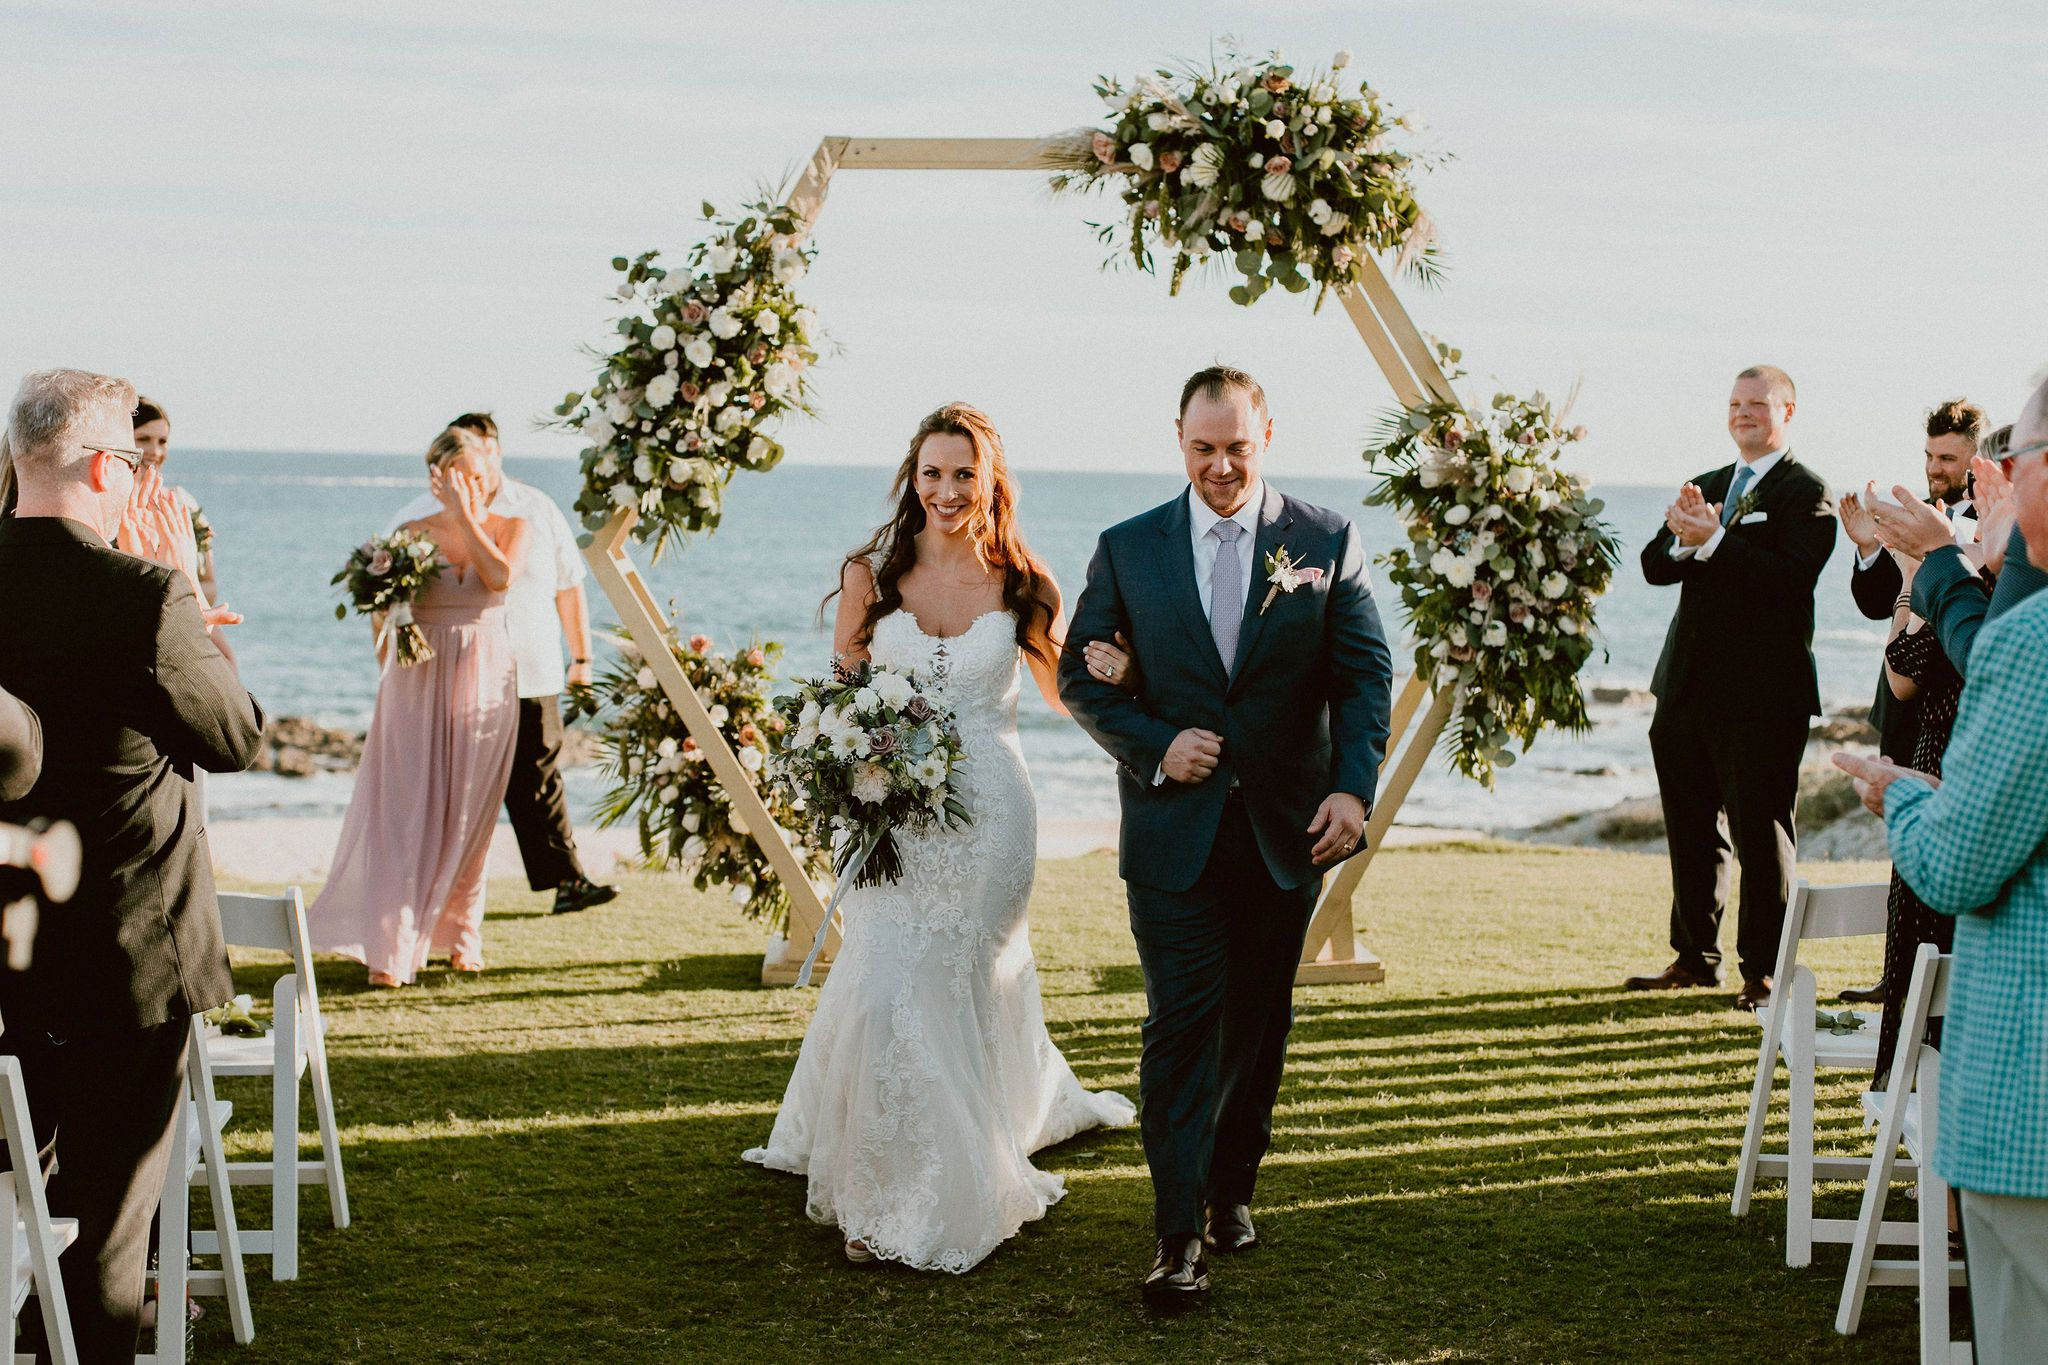 Bride and Groom after the Wedding Ceremony at Cabo del Sol. Destination Wedding Planning by Cabo Wedding Services. Wedding Designer Jesse Wolff